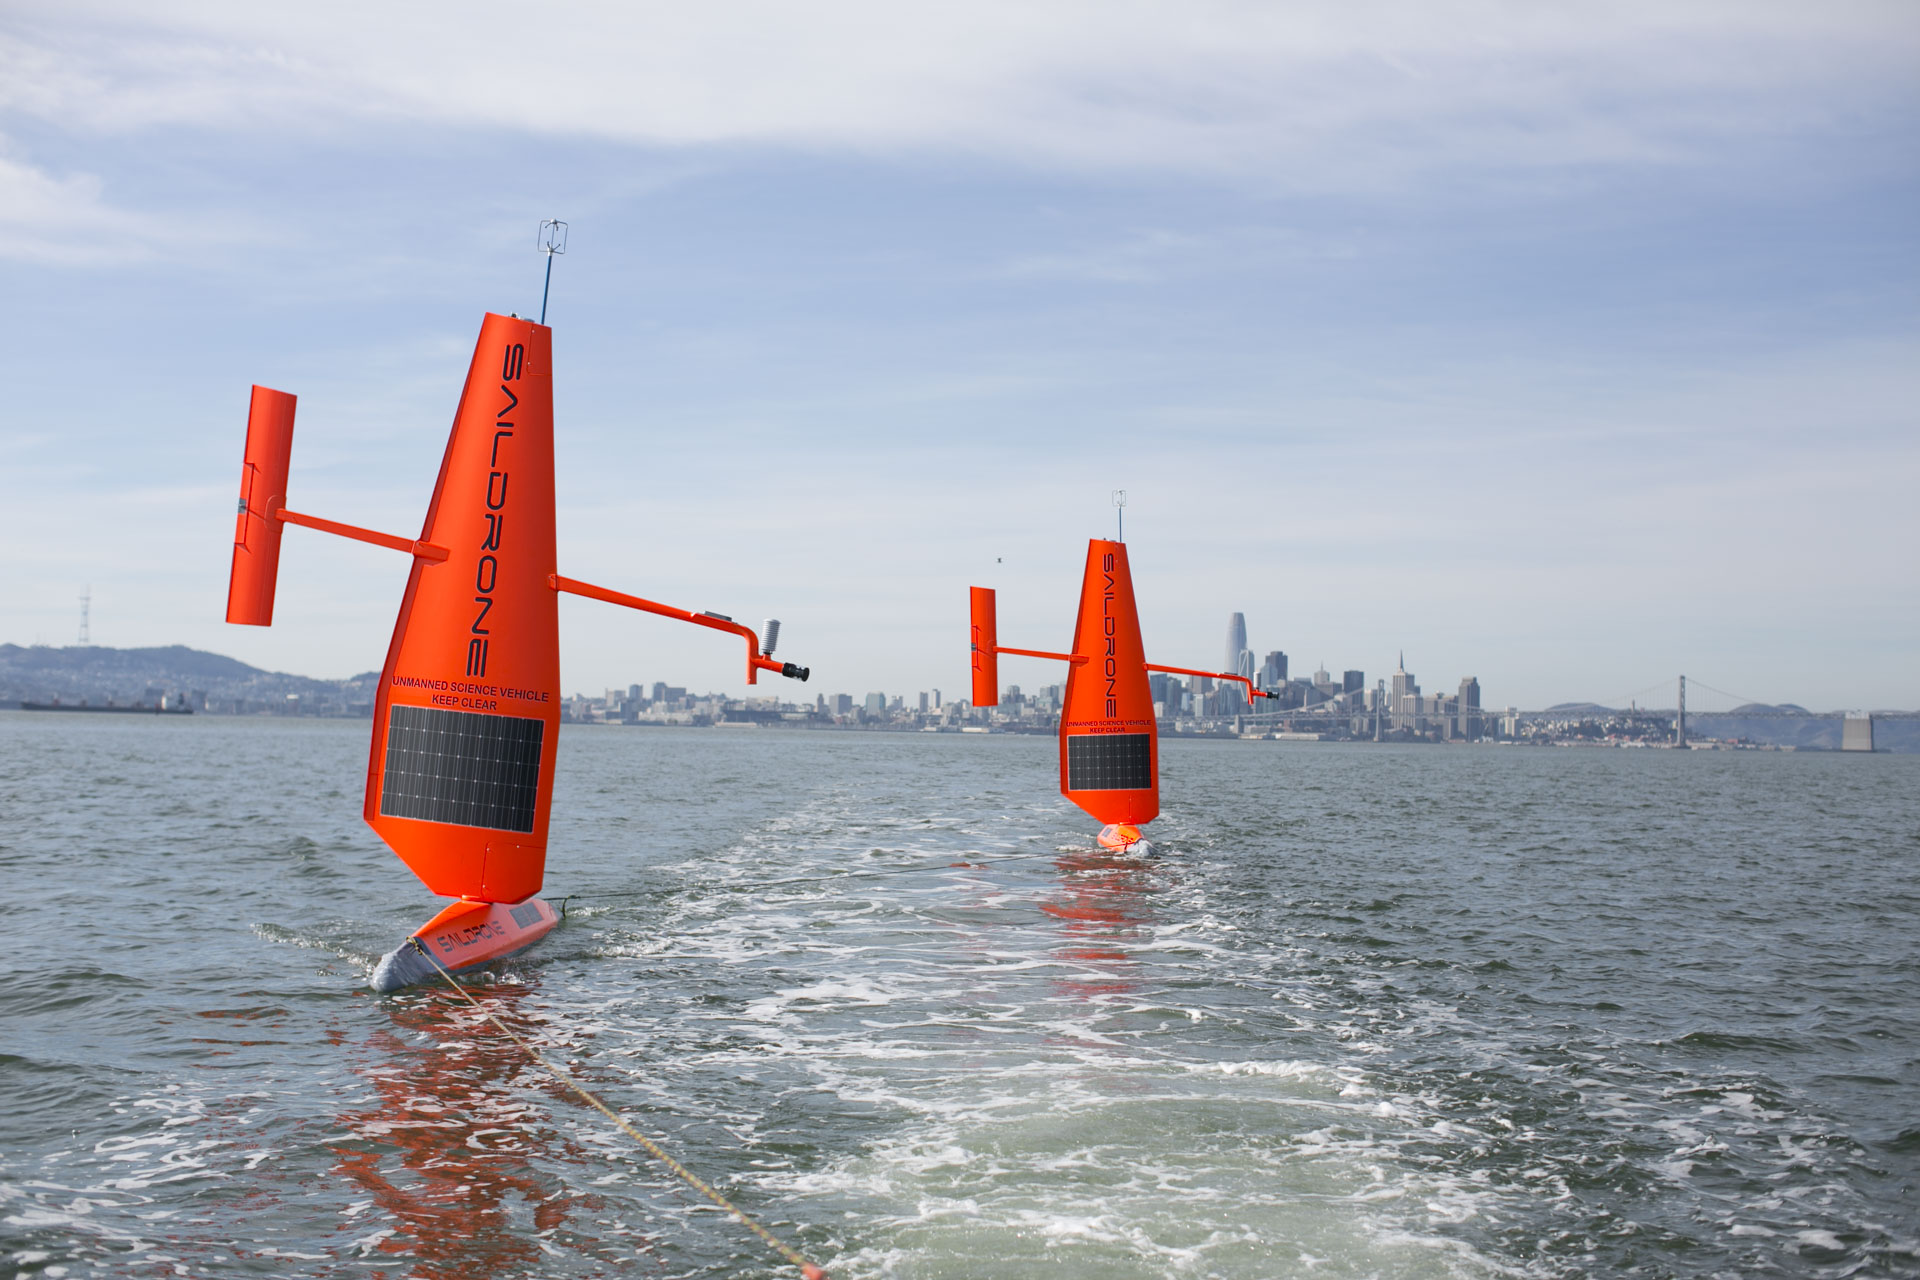 Two unmanned ocean surface vehicles at sea